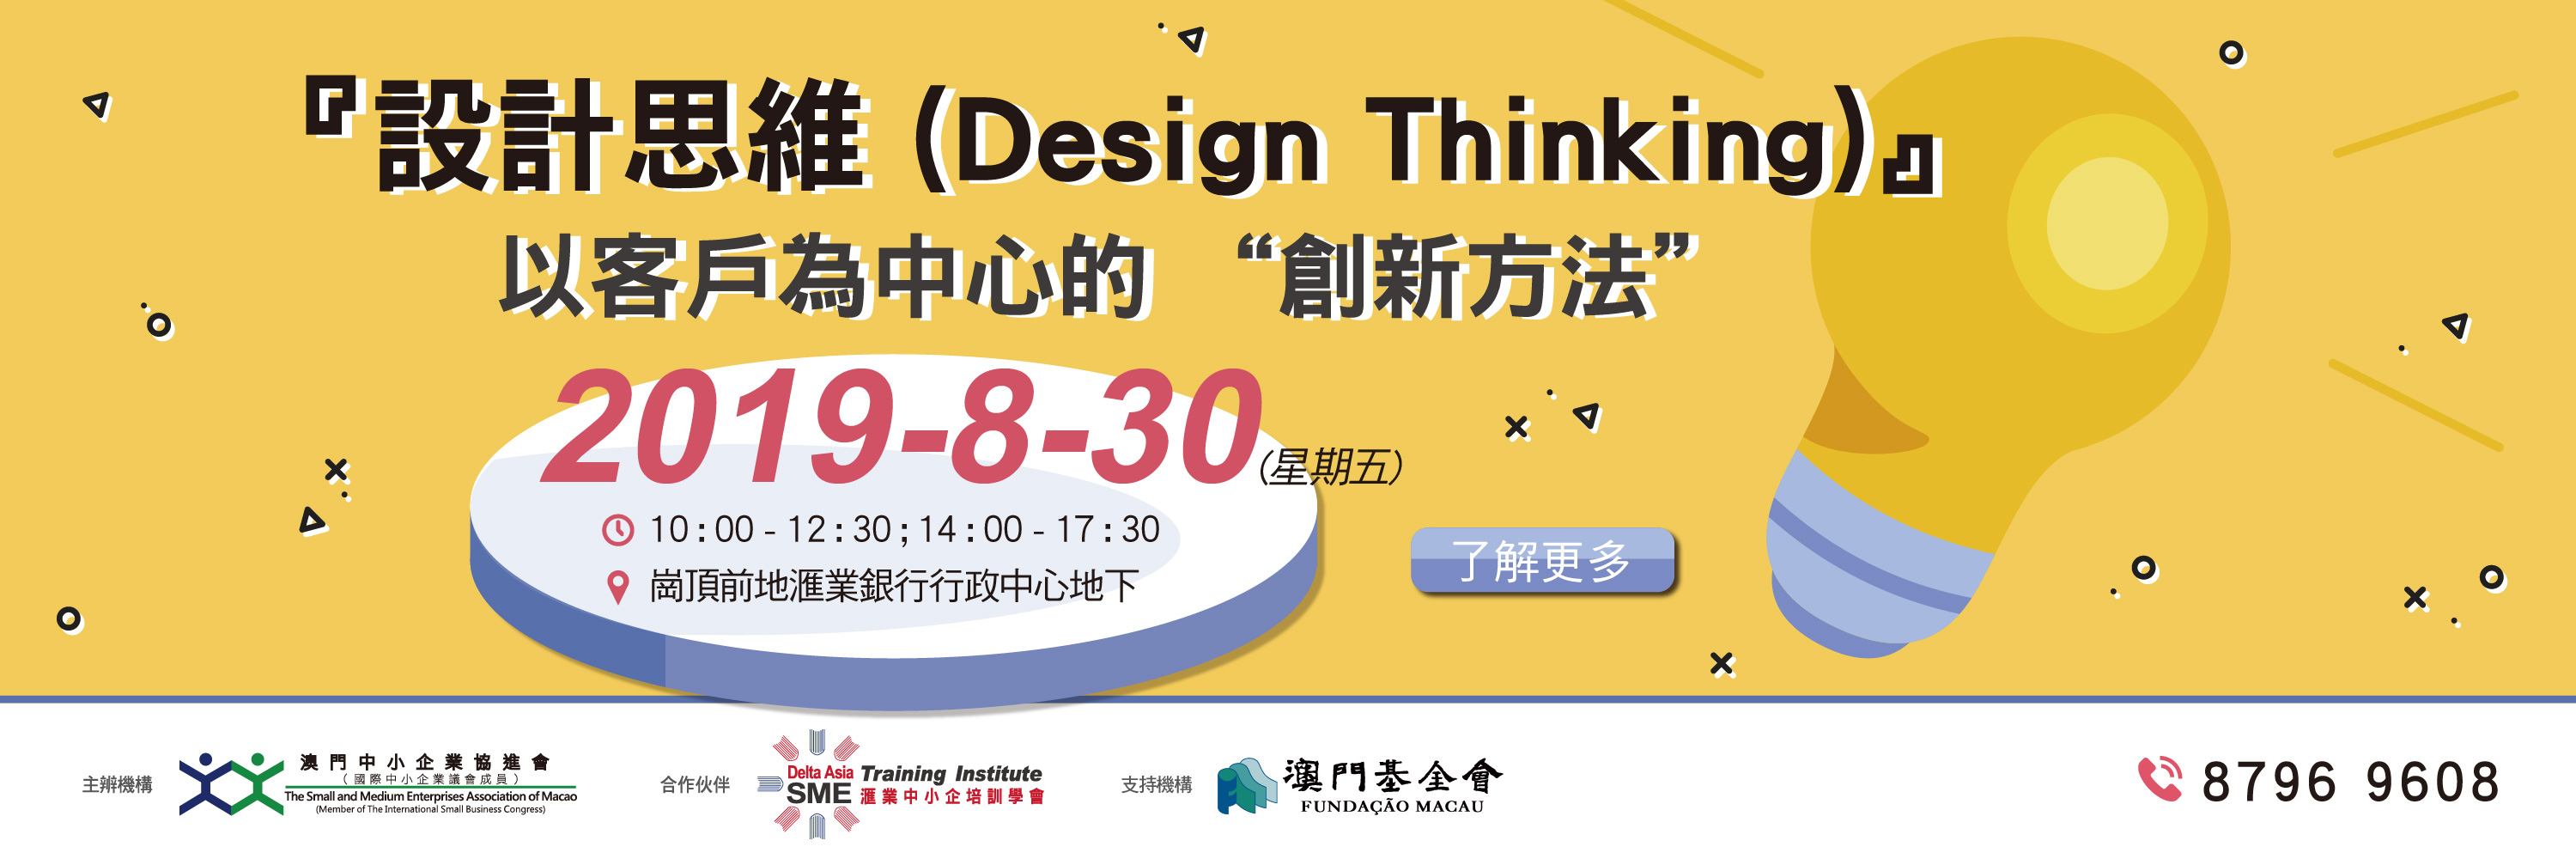 Web-Banner_Design-Thinking-01